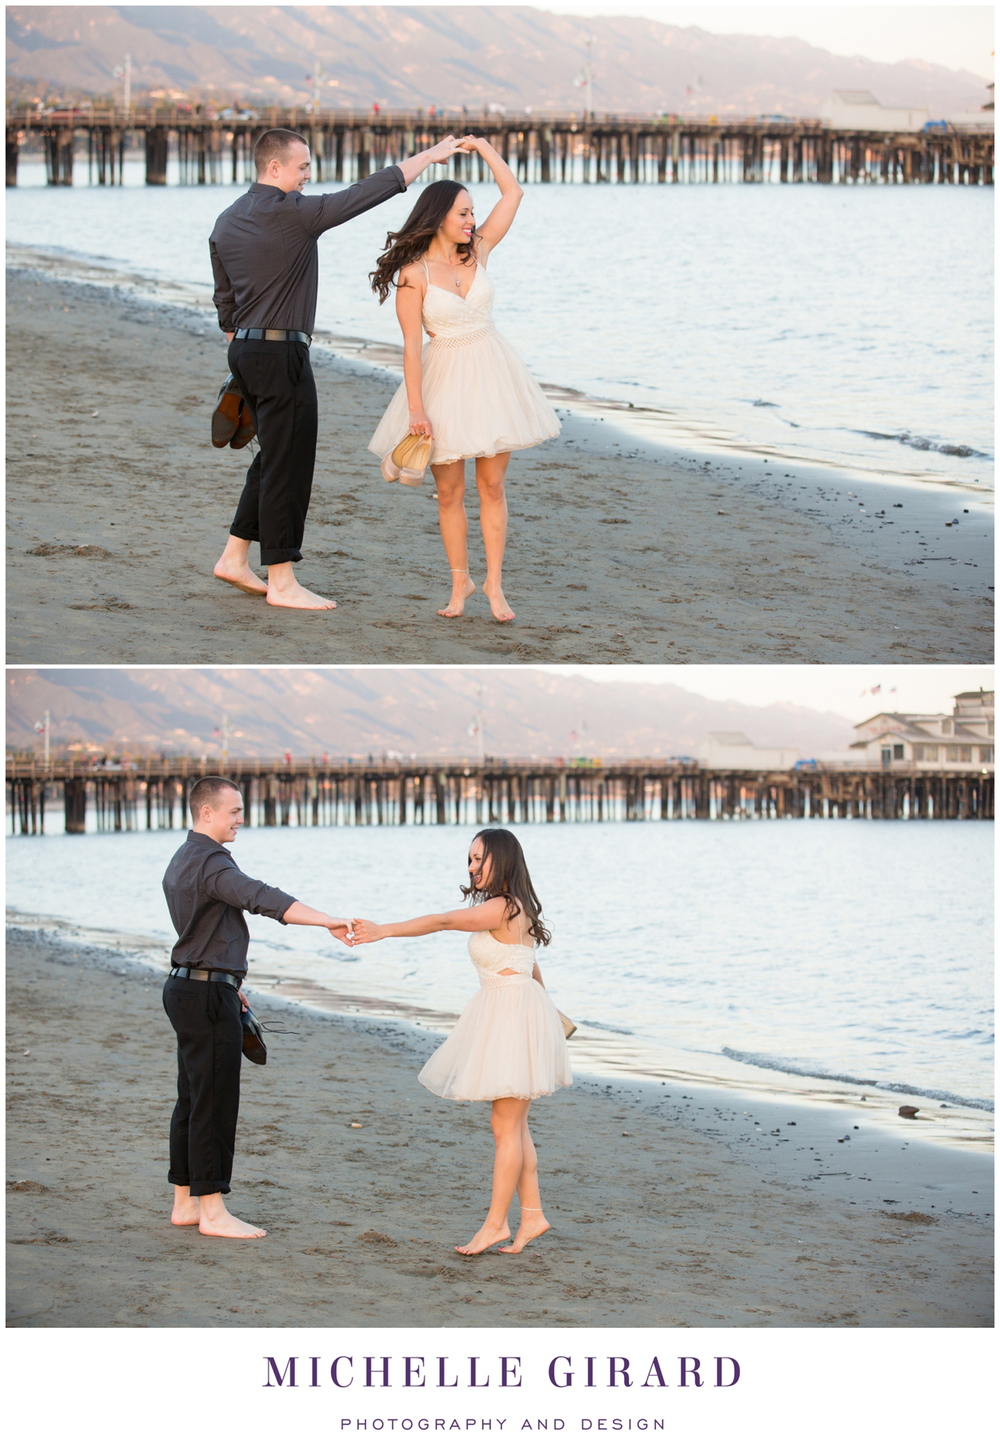 santa-barbara-sunset-beach-elopement-engagement-michelle-girard-photography-02.jpg